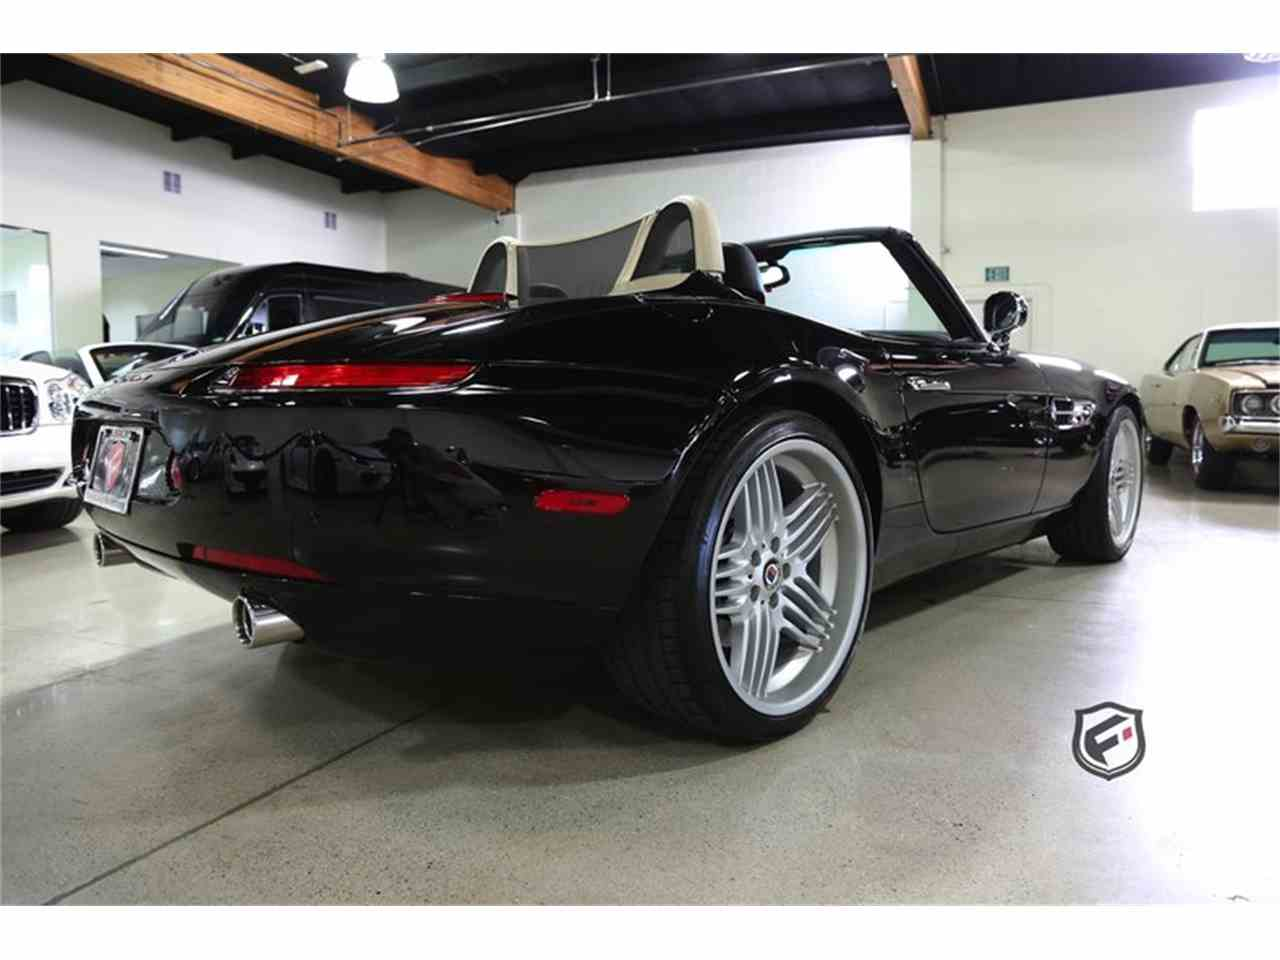 Large Picture of 2003 Z8 Alpina located in Chatsworth California - $249,900.00 - IT3N